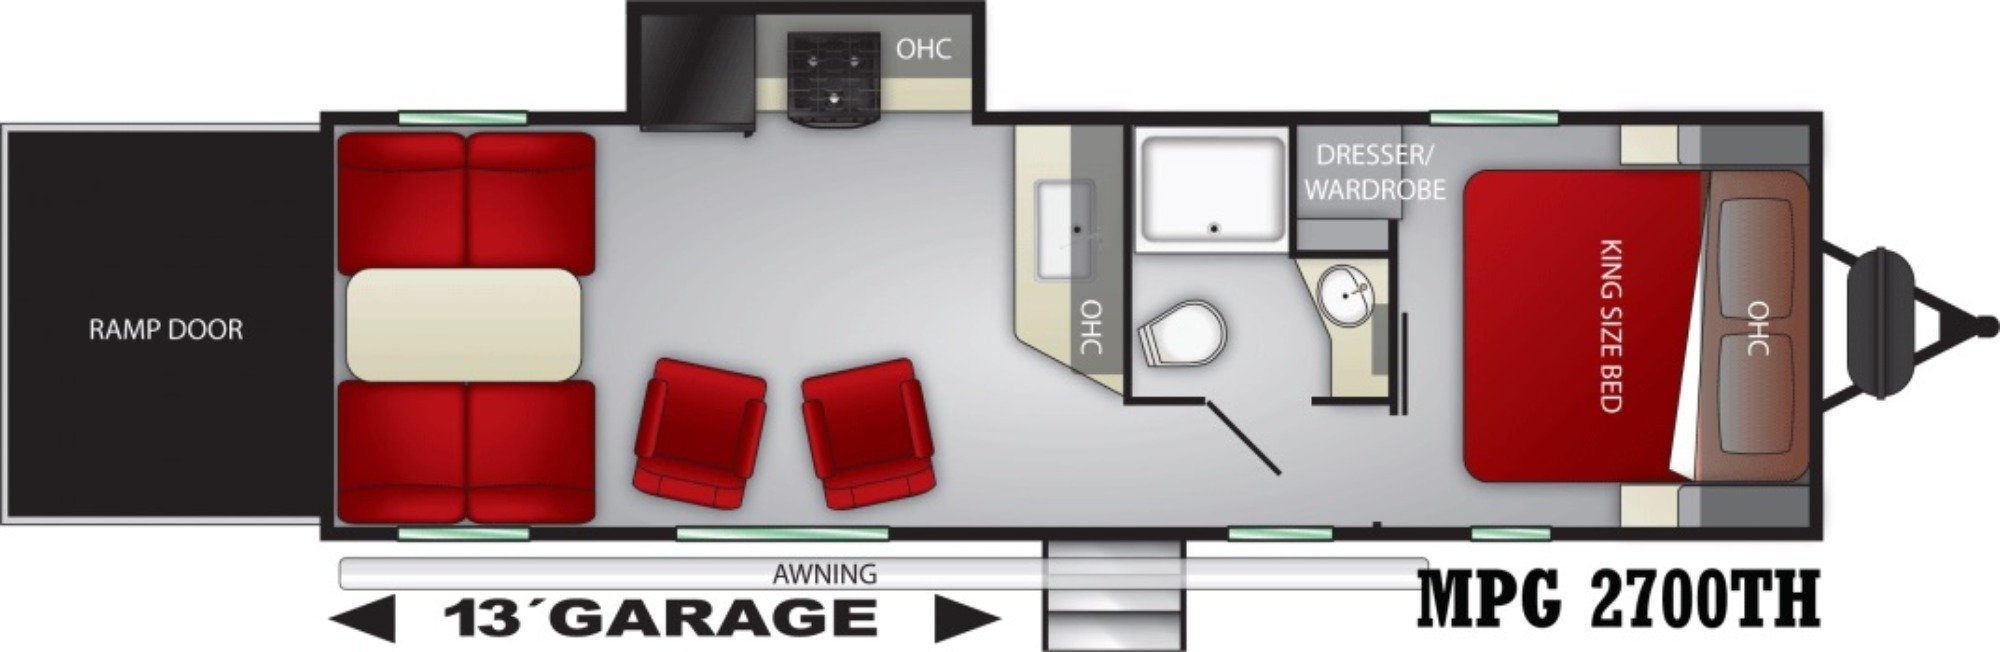 View Floor Plan for 2021 CRUISER RV MPG 2700TH